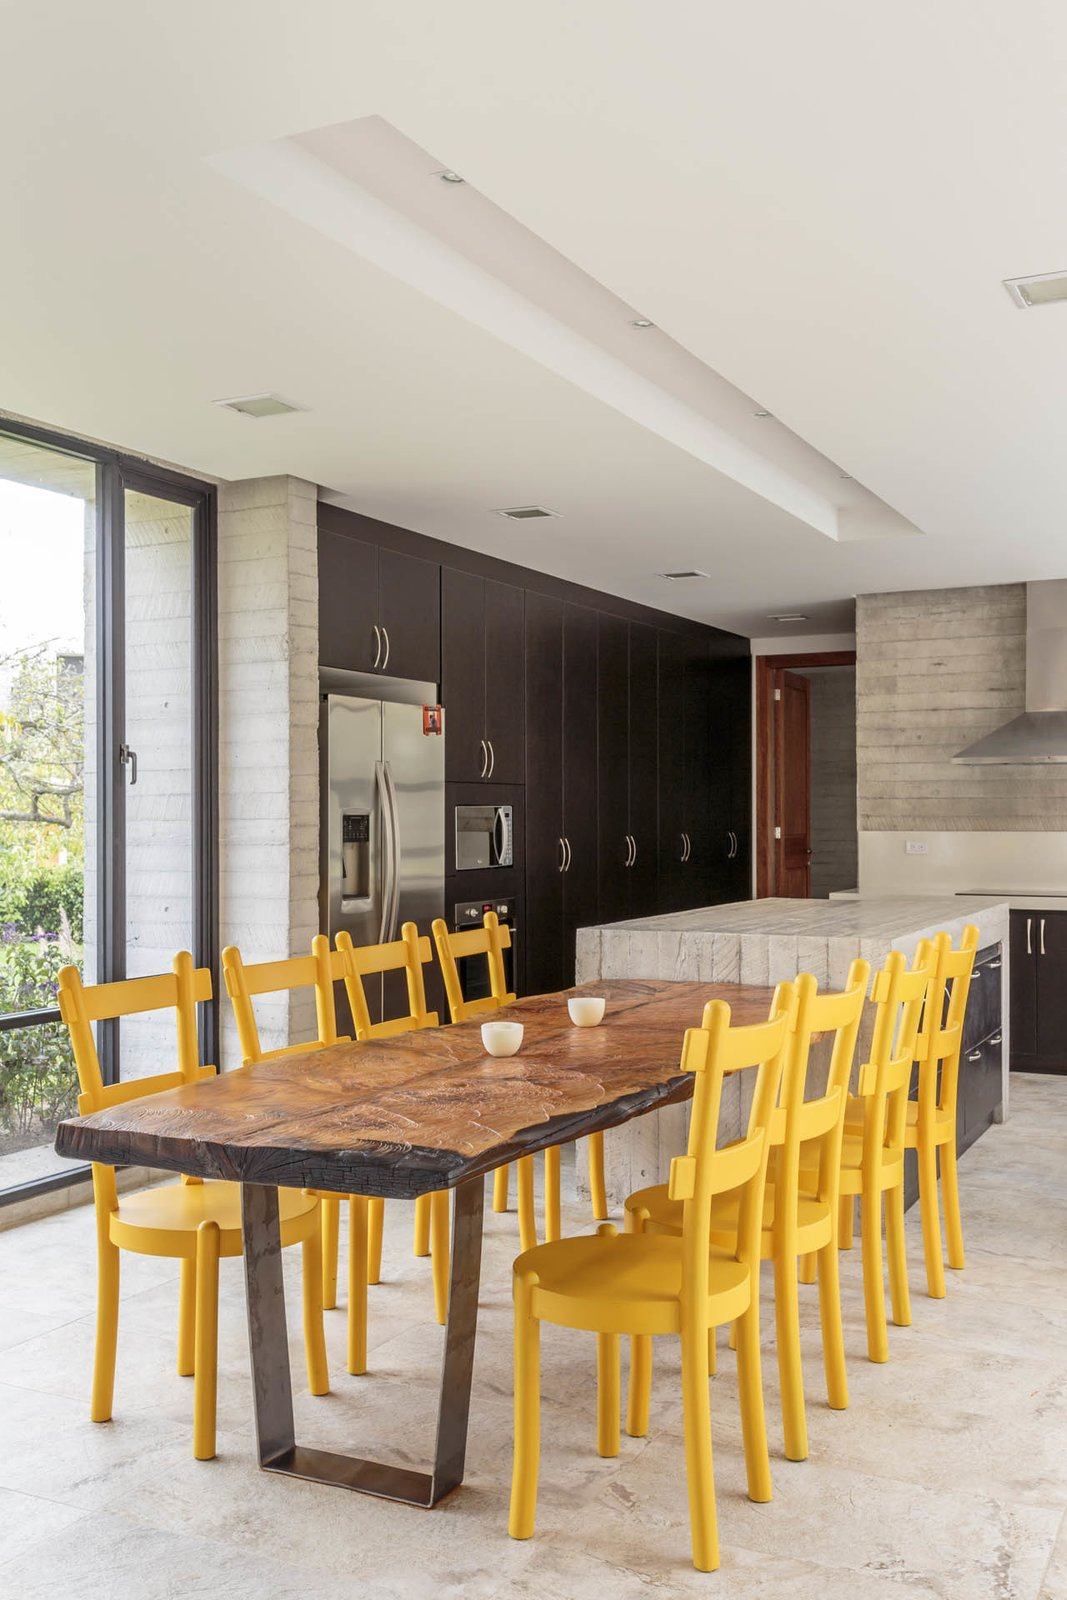 The custom kitchen counters are concrete, and the yellow dining chairs add a welcome splash of color. Tagged: Kitchen and Concrete Counter.  Photo 23 of 25 in 25 Bold Ways to Decorate with Yellow from Uncle Knows Best